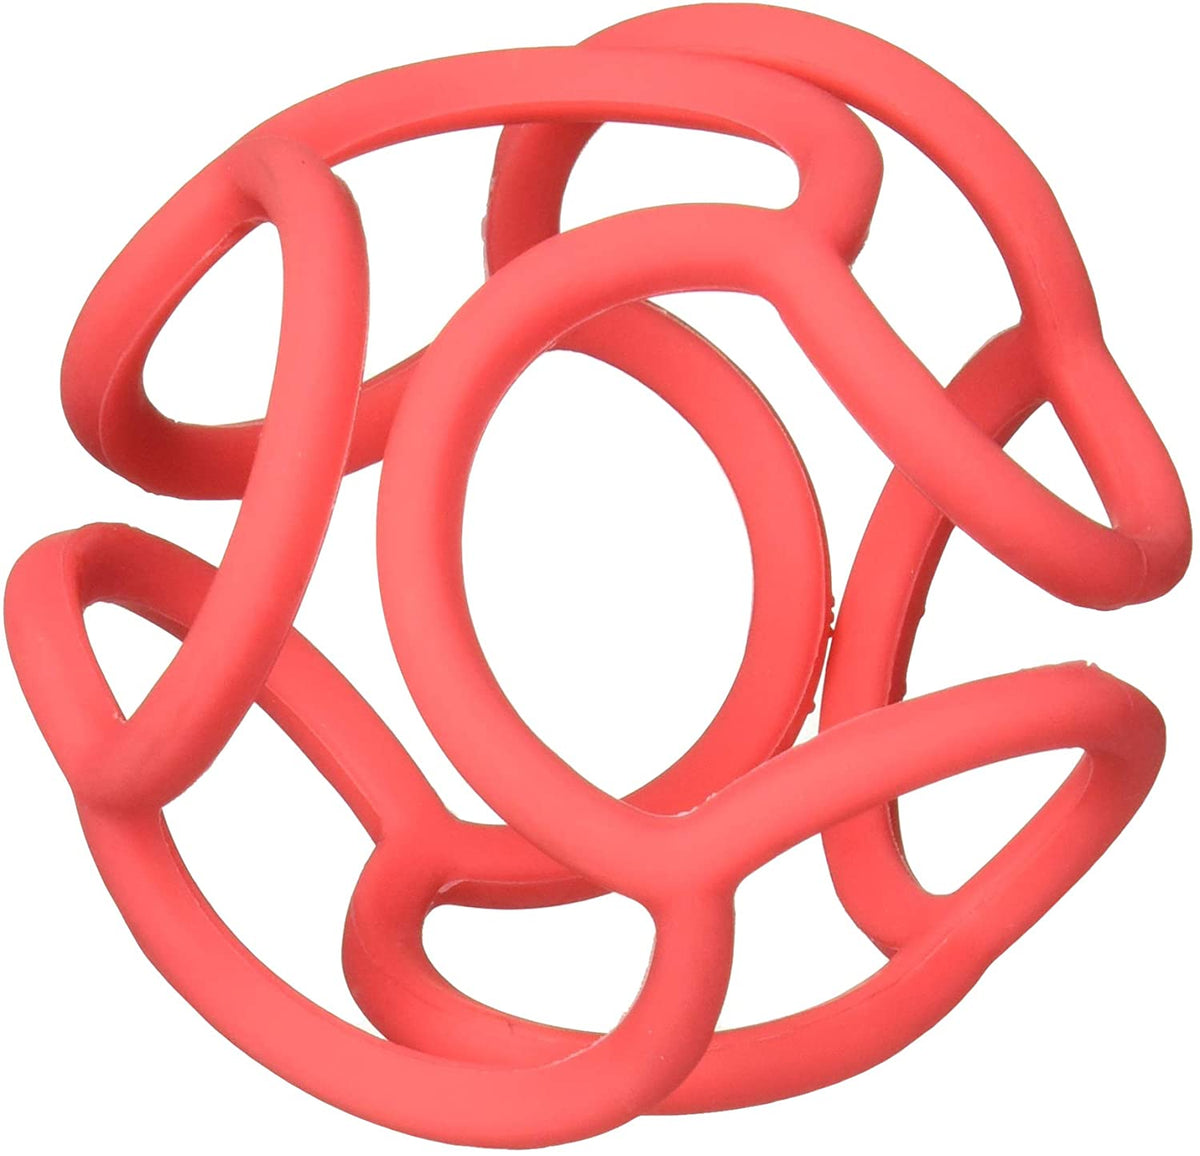 OgoSport Bolli Flexible Teether Ball